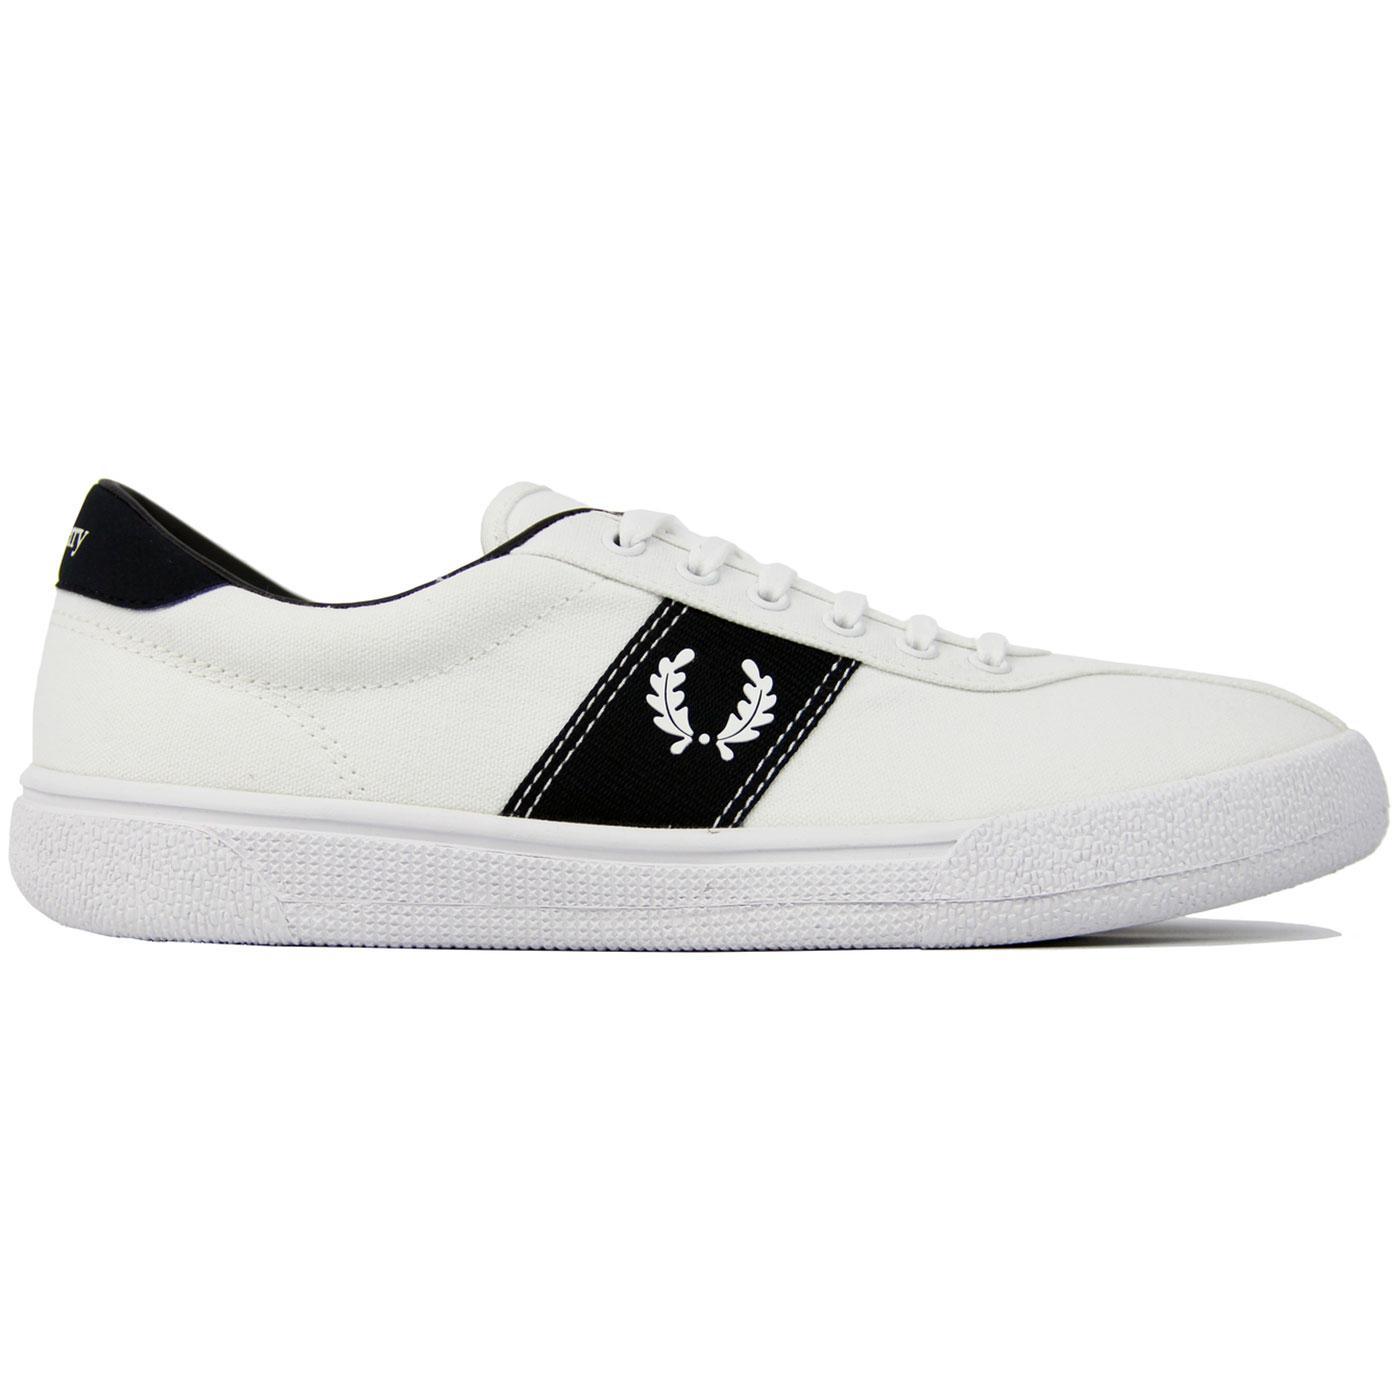 FRED PERRY Mens Retro 70s Authentic Tennis Shoes W